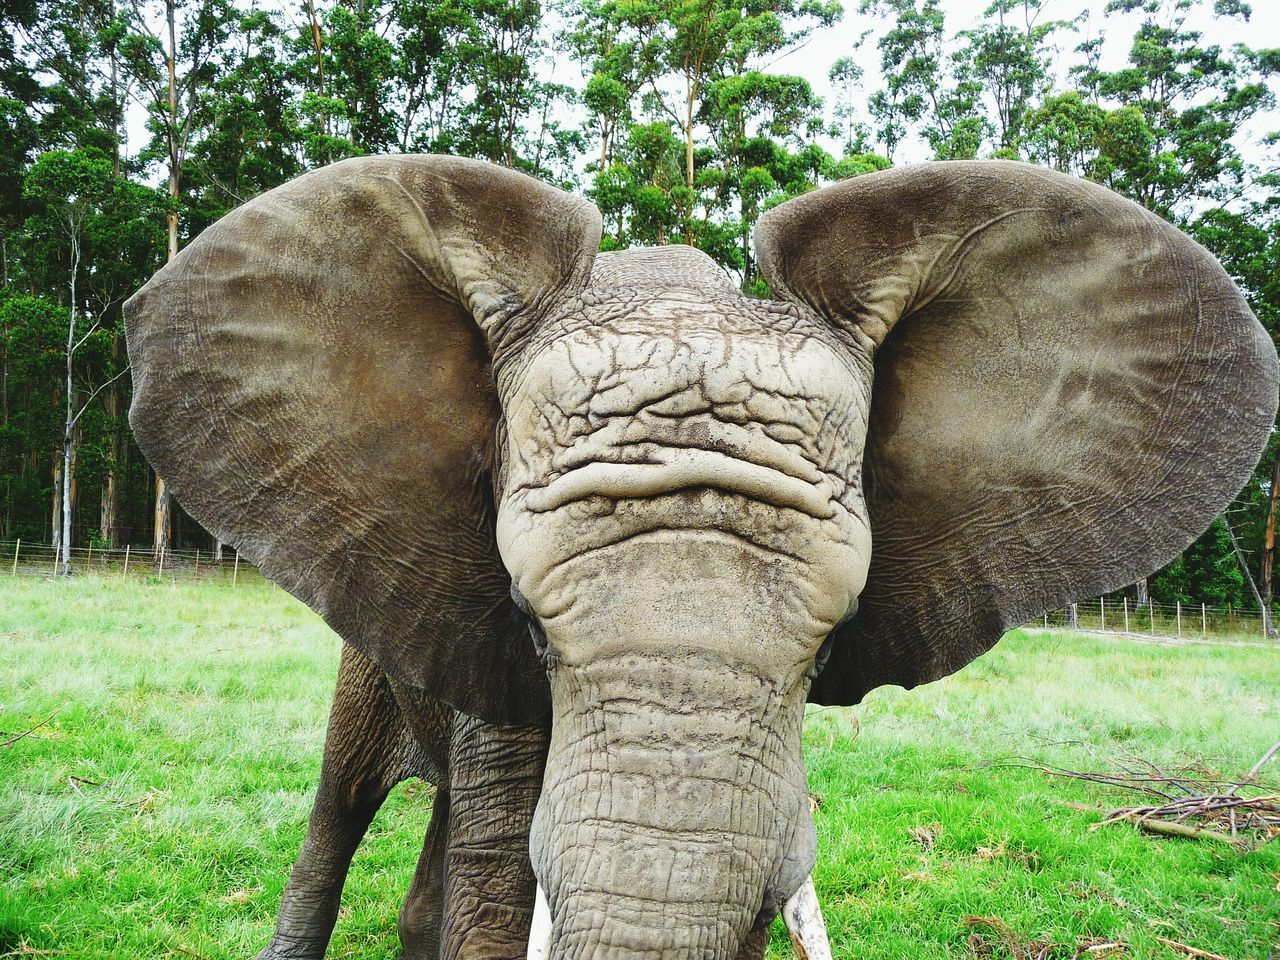 Elephant Grass Animal Themes Tree Nature Animal Trunk One Animal No People Day Animals In The Wild Outdoors Green Color African Elephant Mammal Safari Animals Tusk